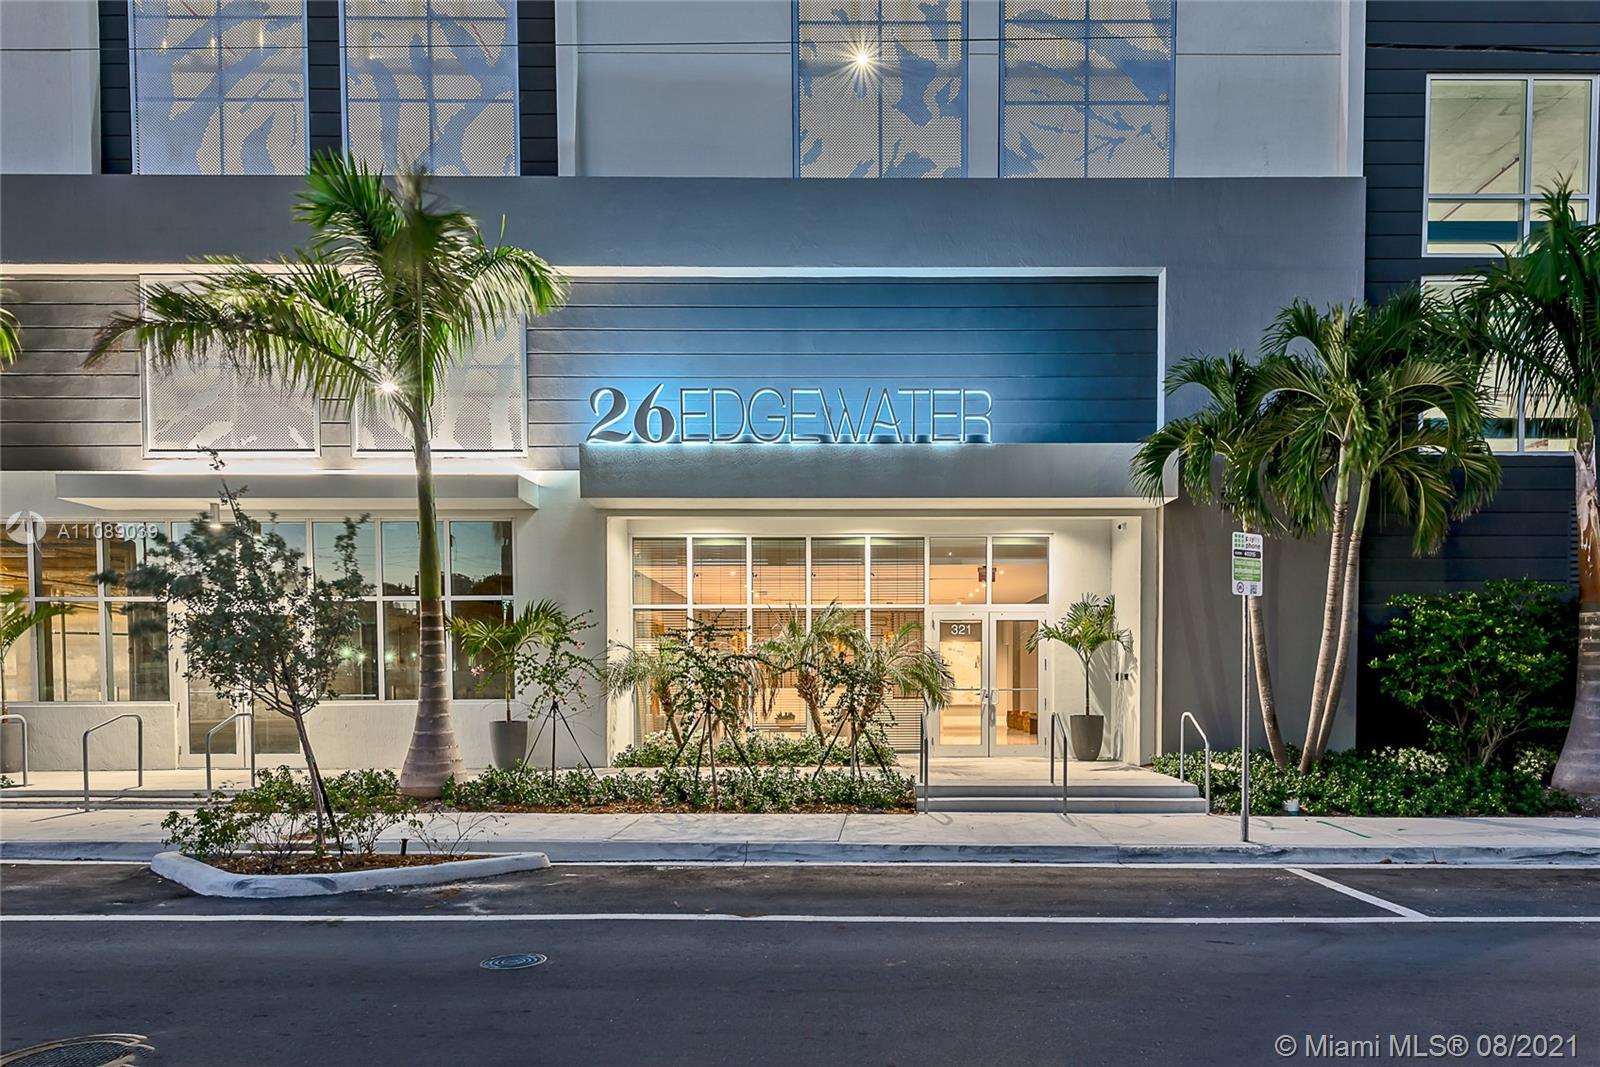 Developer closeout! One bedroom unit available at one of the newest luxury condos in the Biscayne co